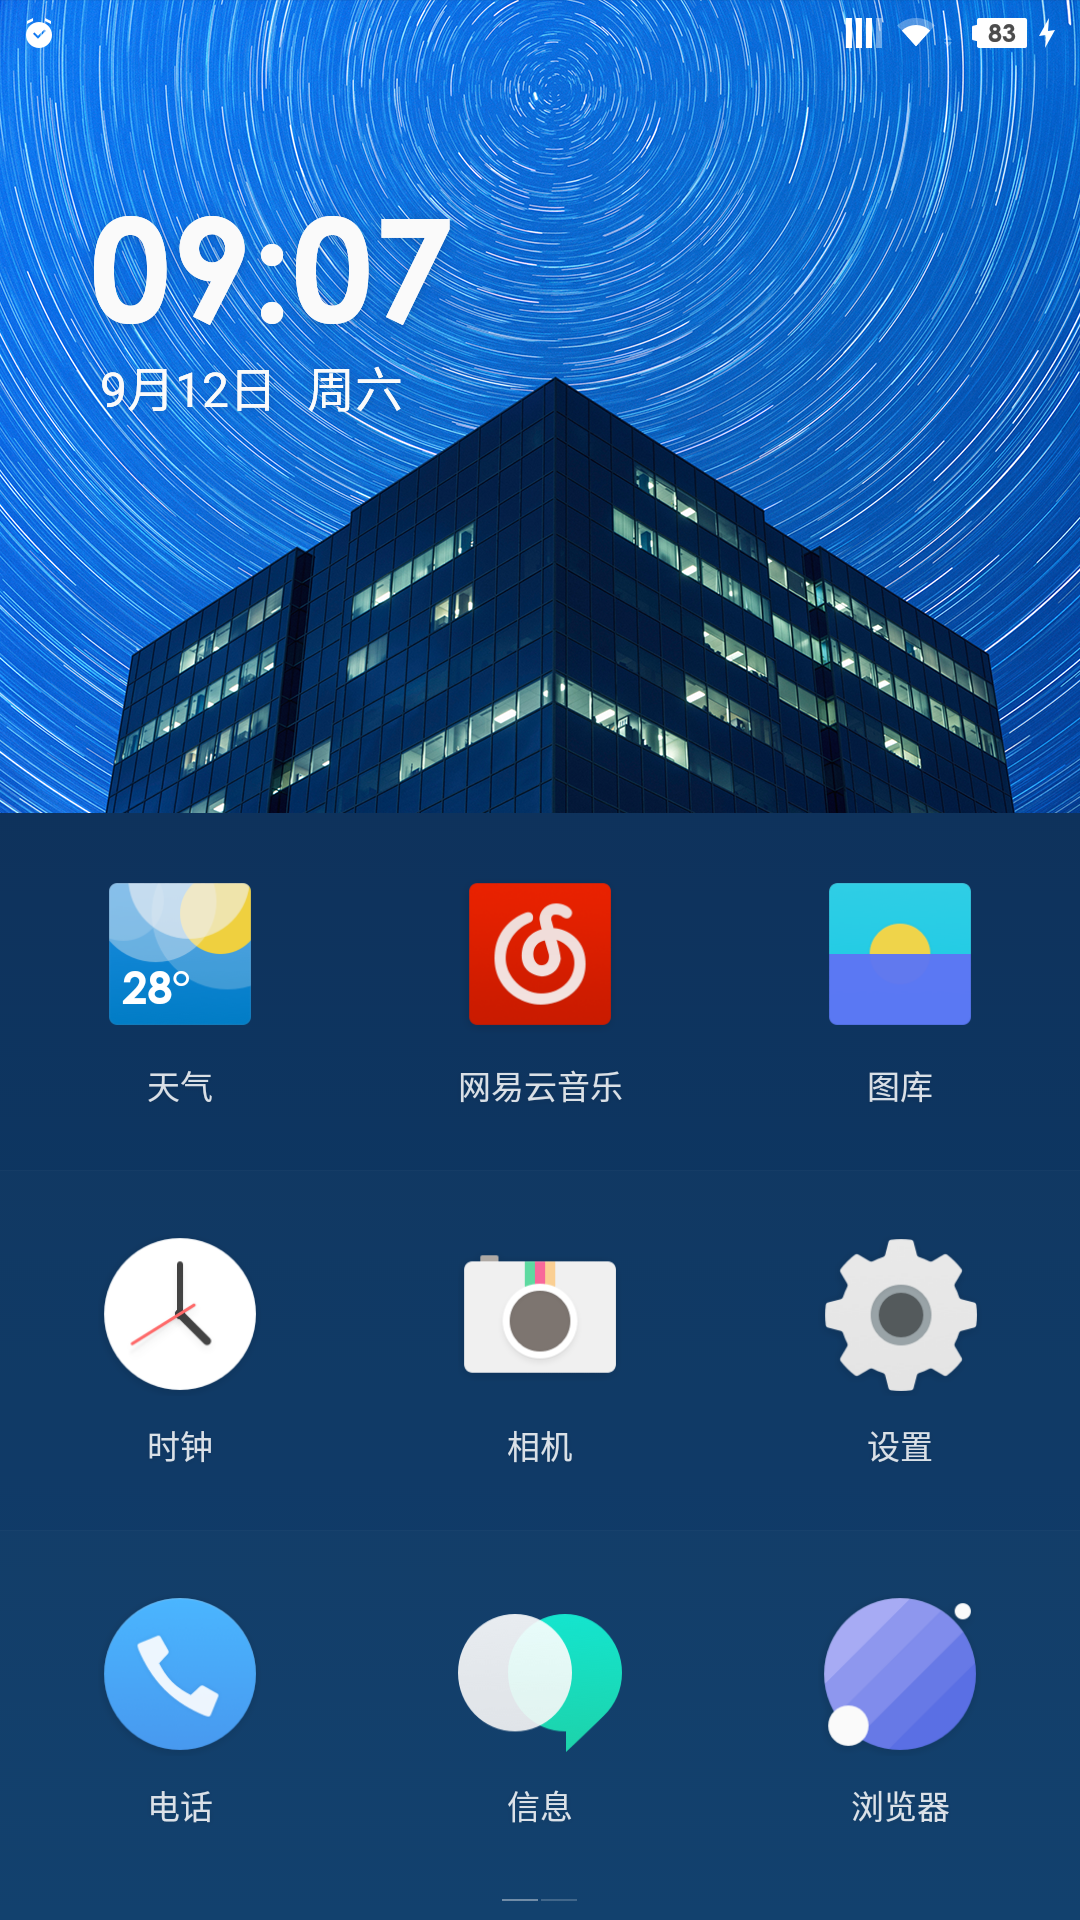 Screenshot_2015-09-12-09-08-01.png